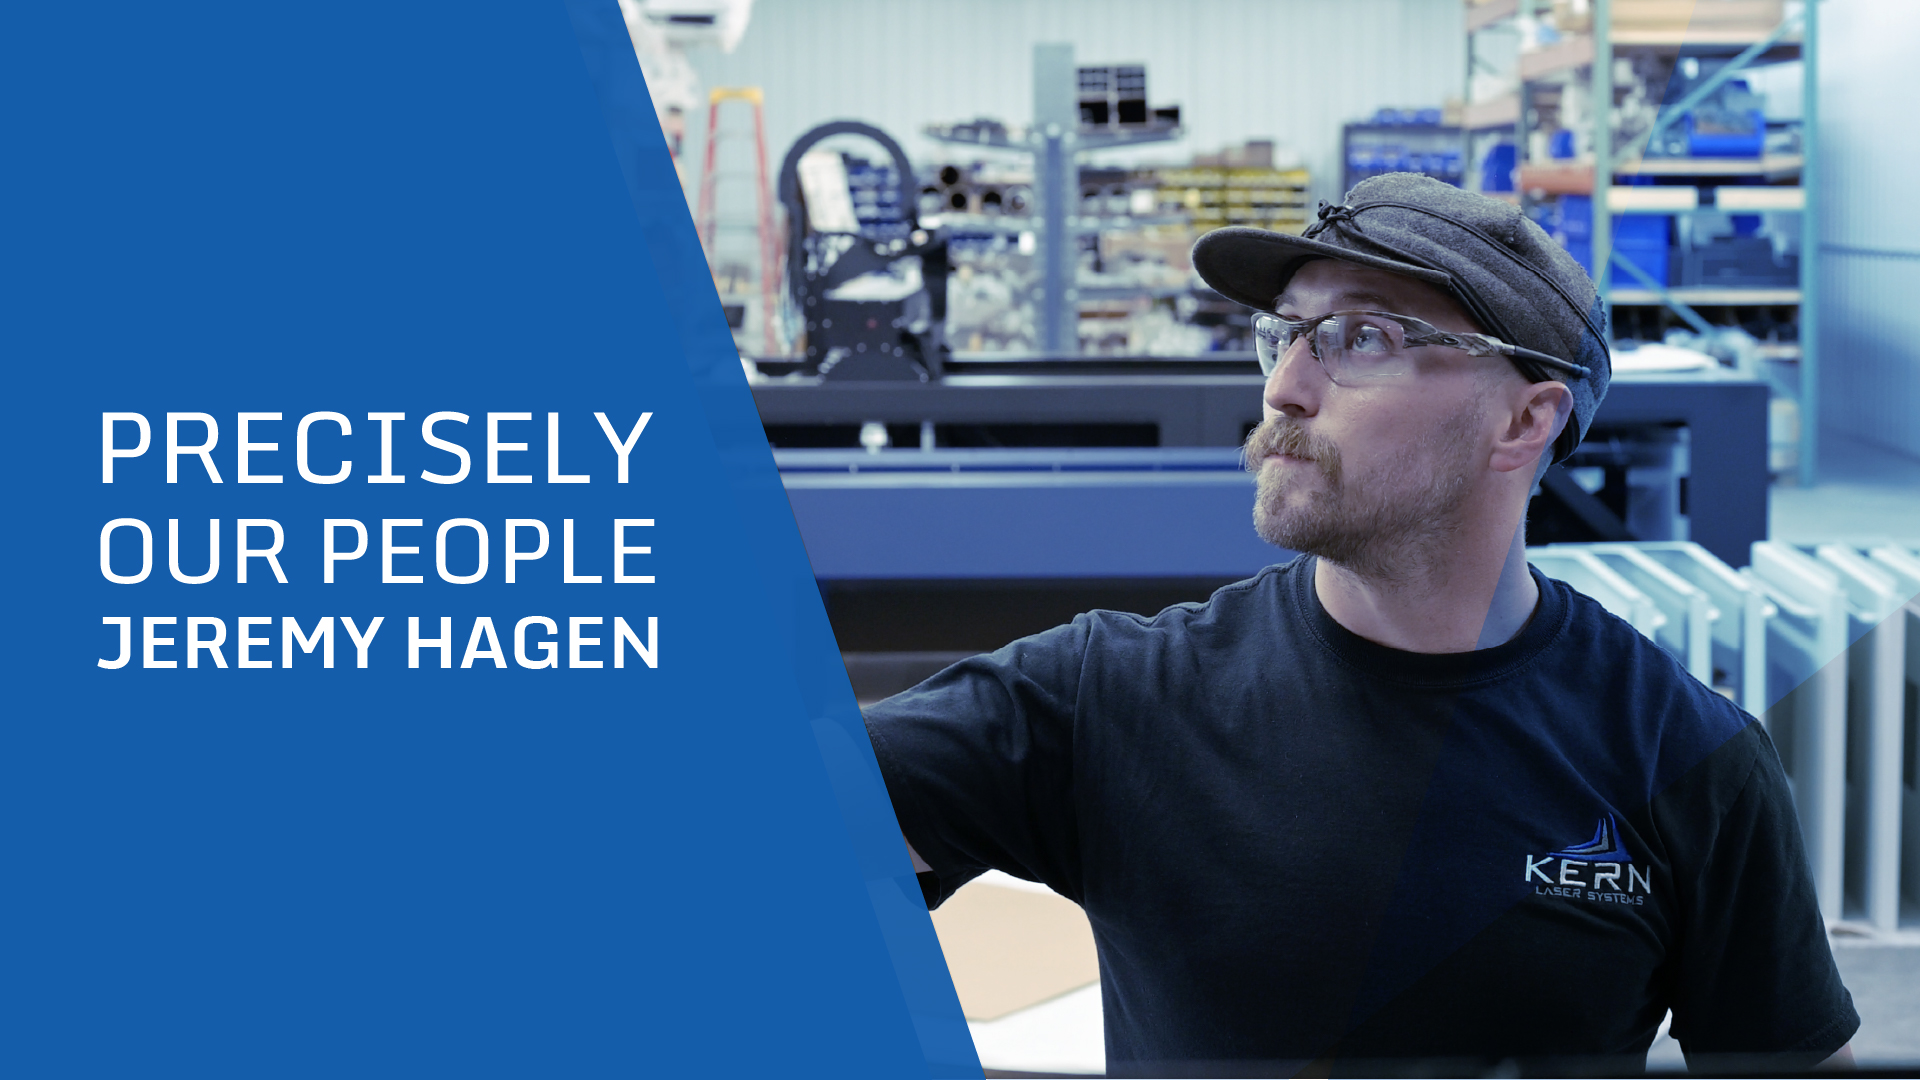 Precisely Our People: Meet Jeremy Hagen